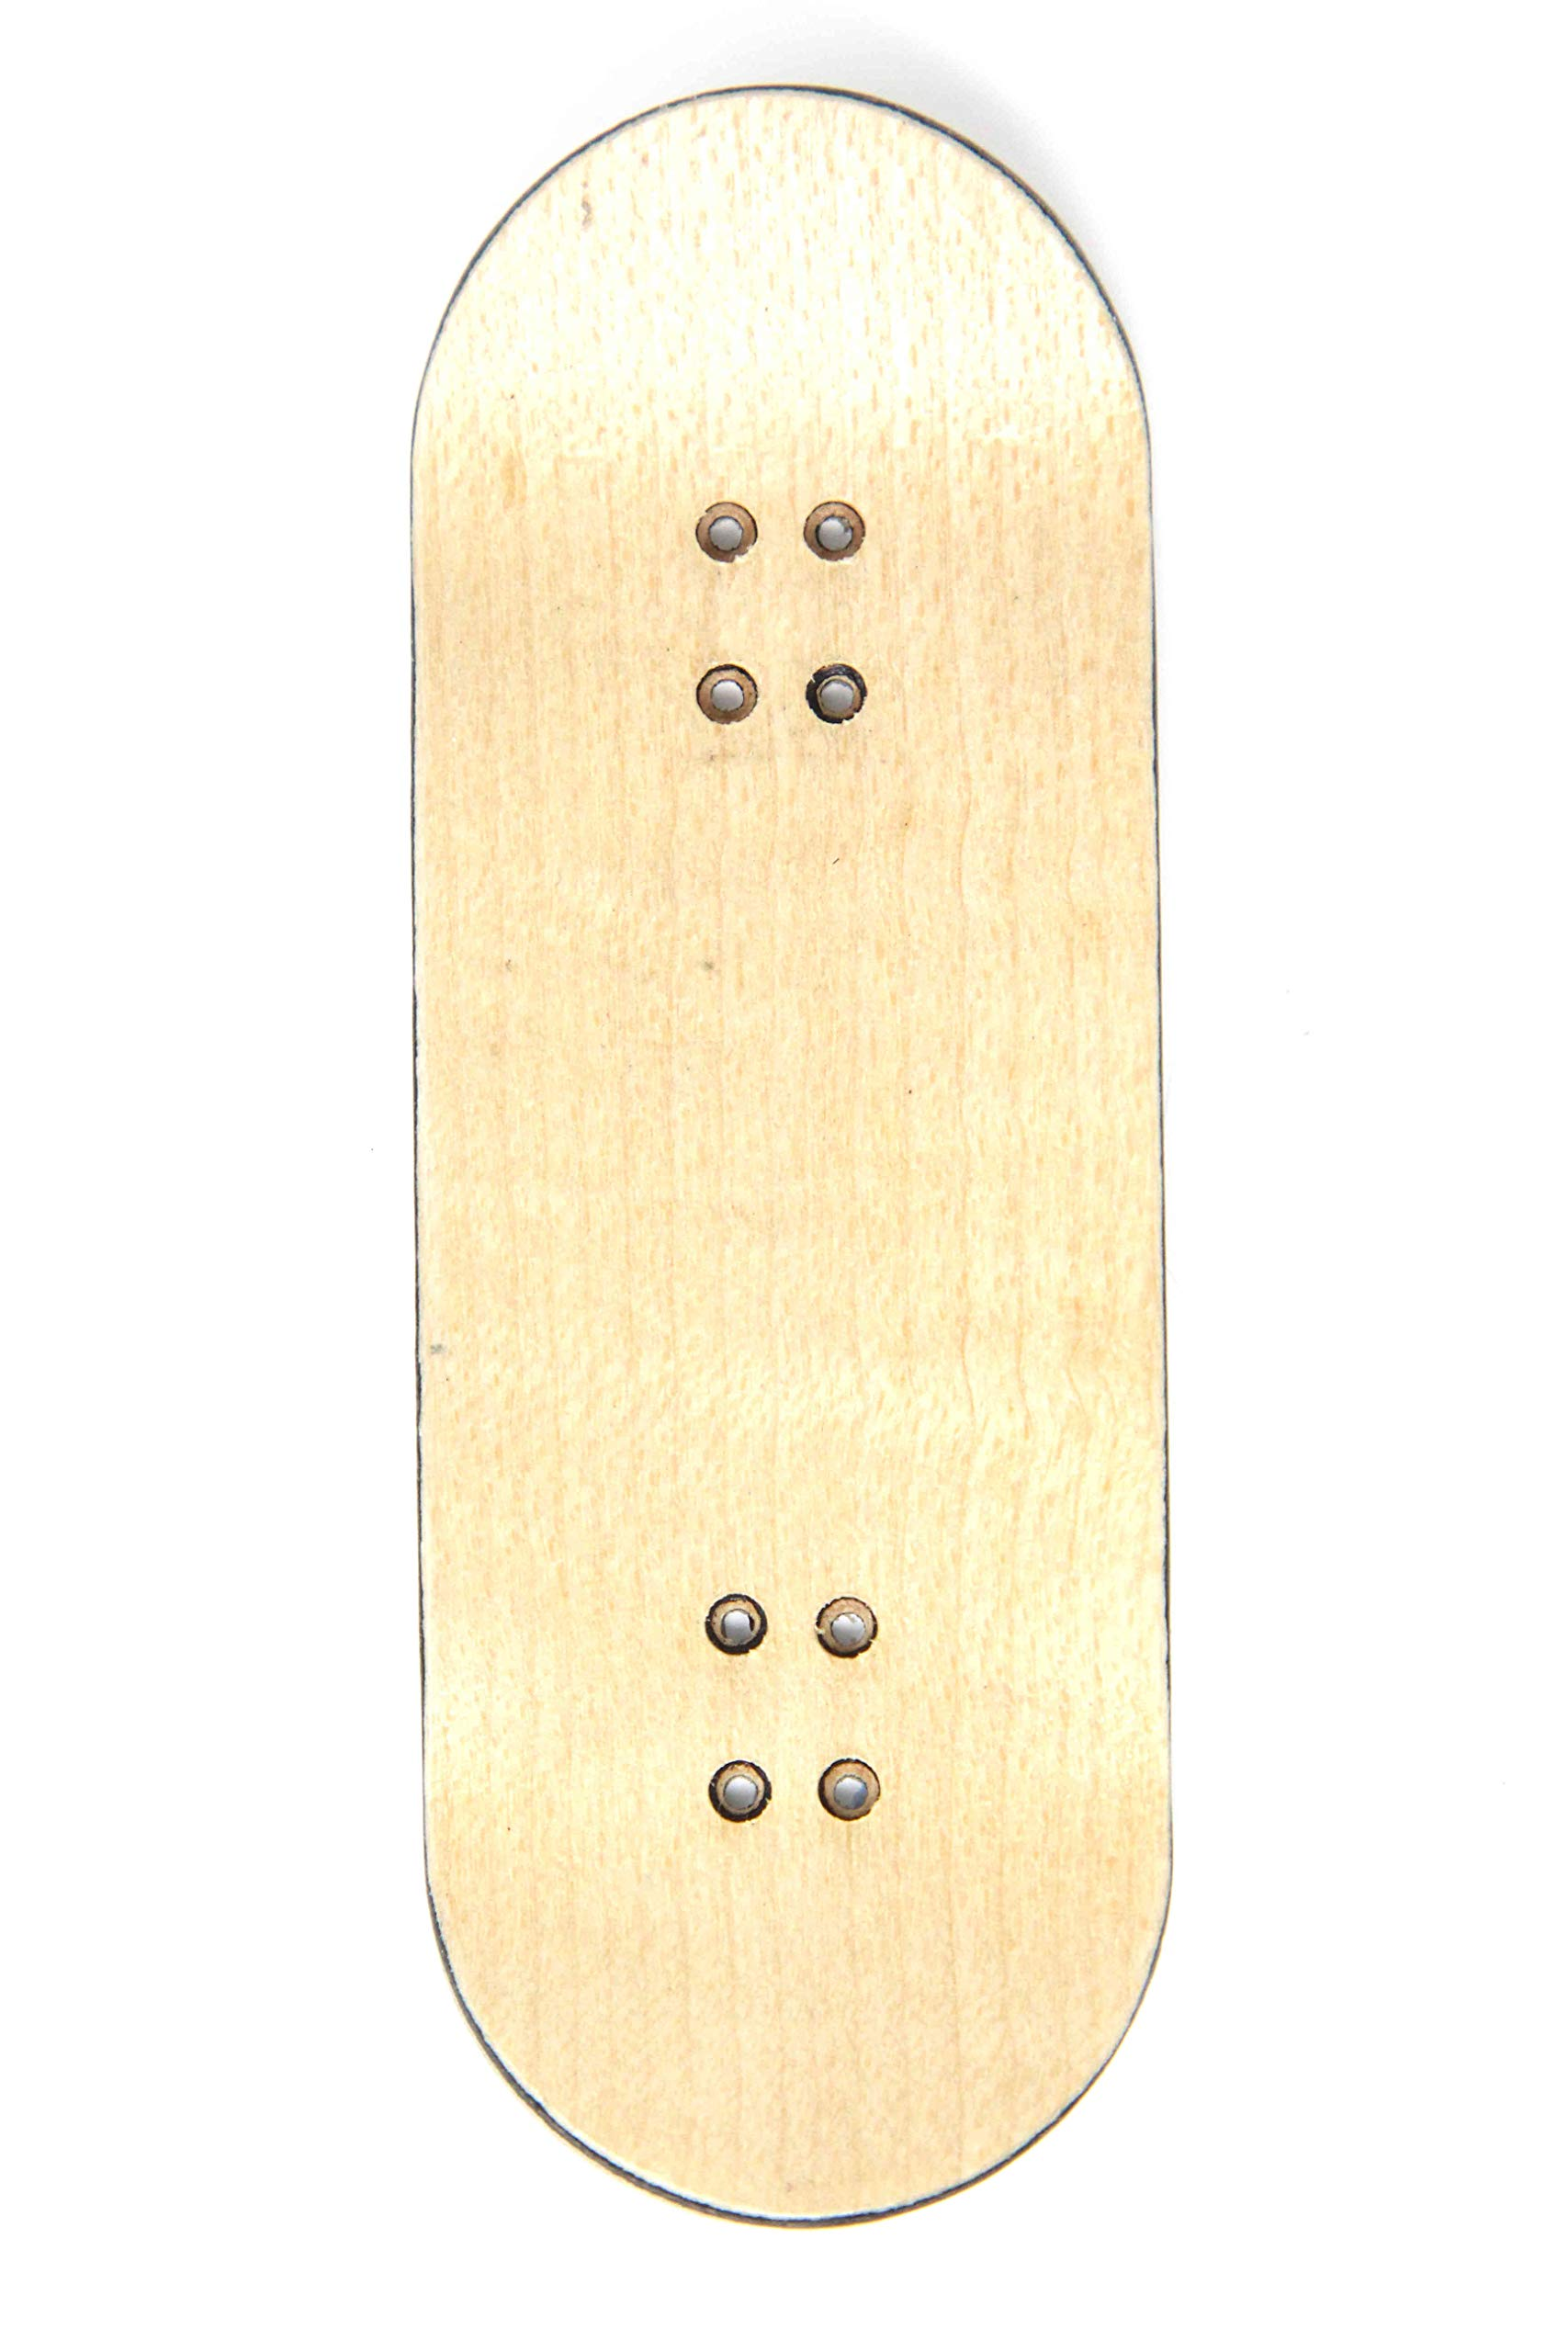 Skull Fingerboards FK You 34mm Complete Professional Wooden Fingerboard Mini Skateboard 5 PLY with CNC Bearing Wheels by Skull Fingerboards (Image #3)